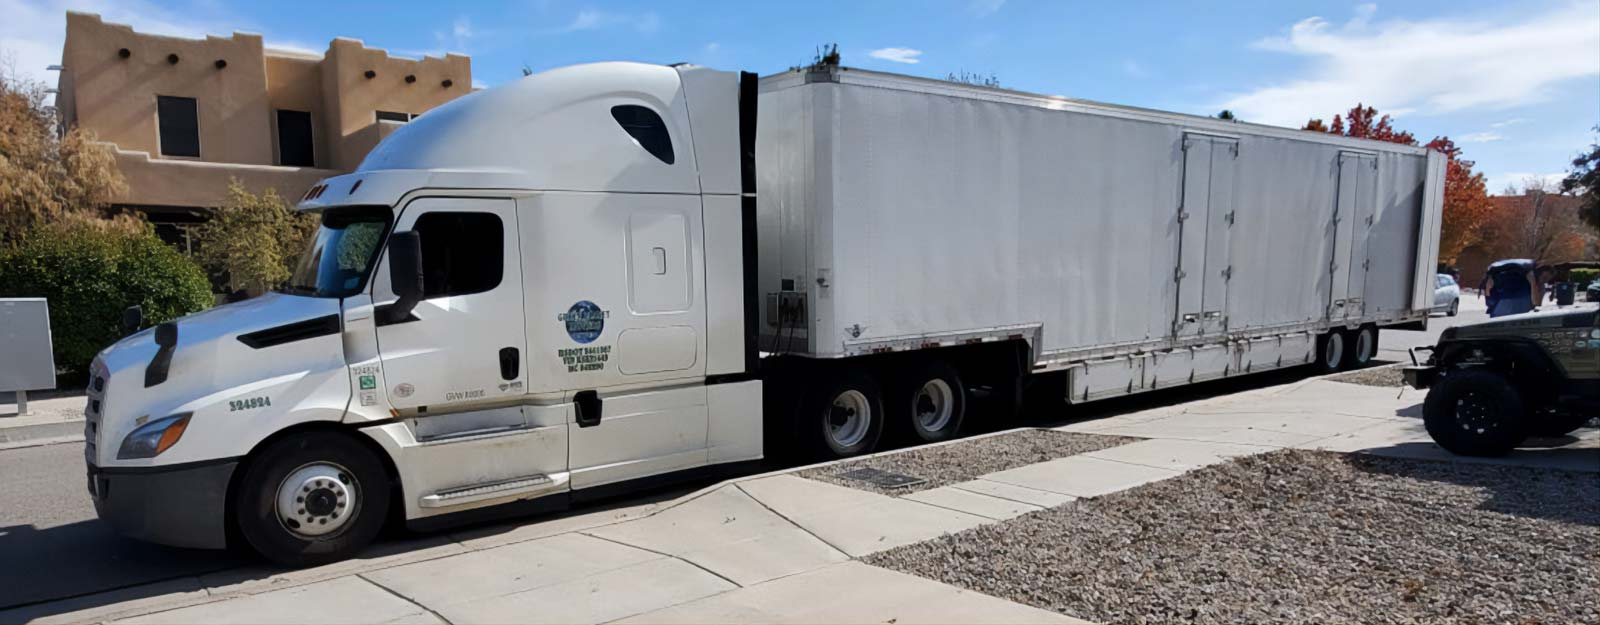 long distance movers in denver